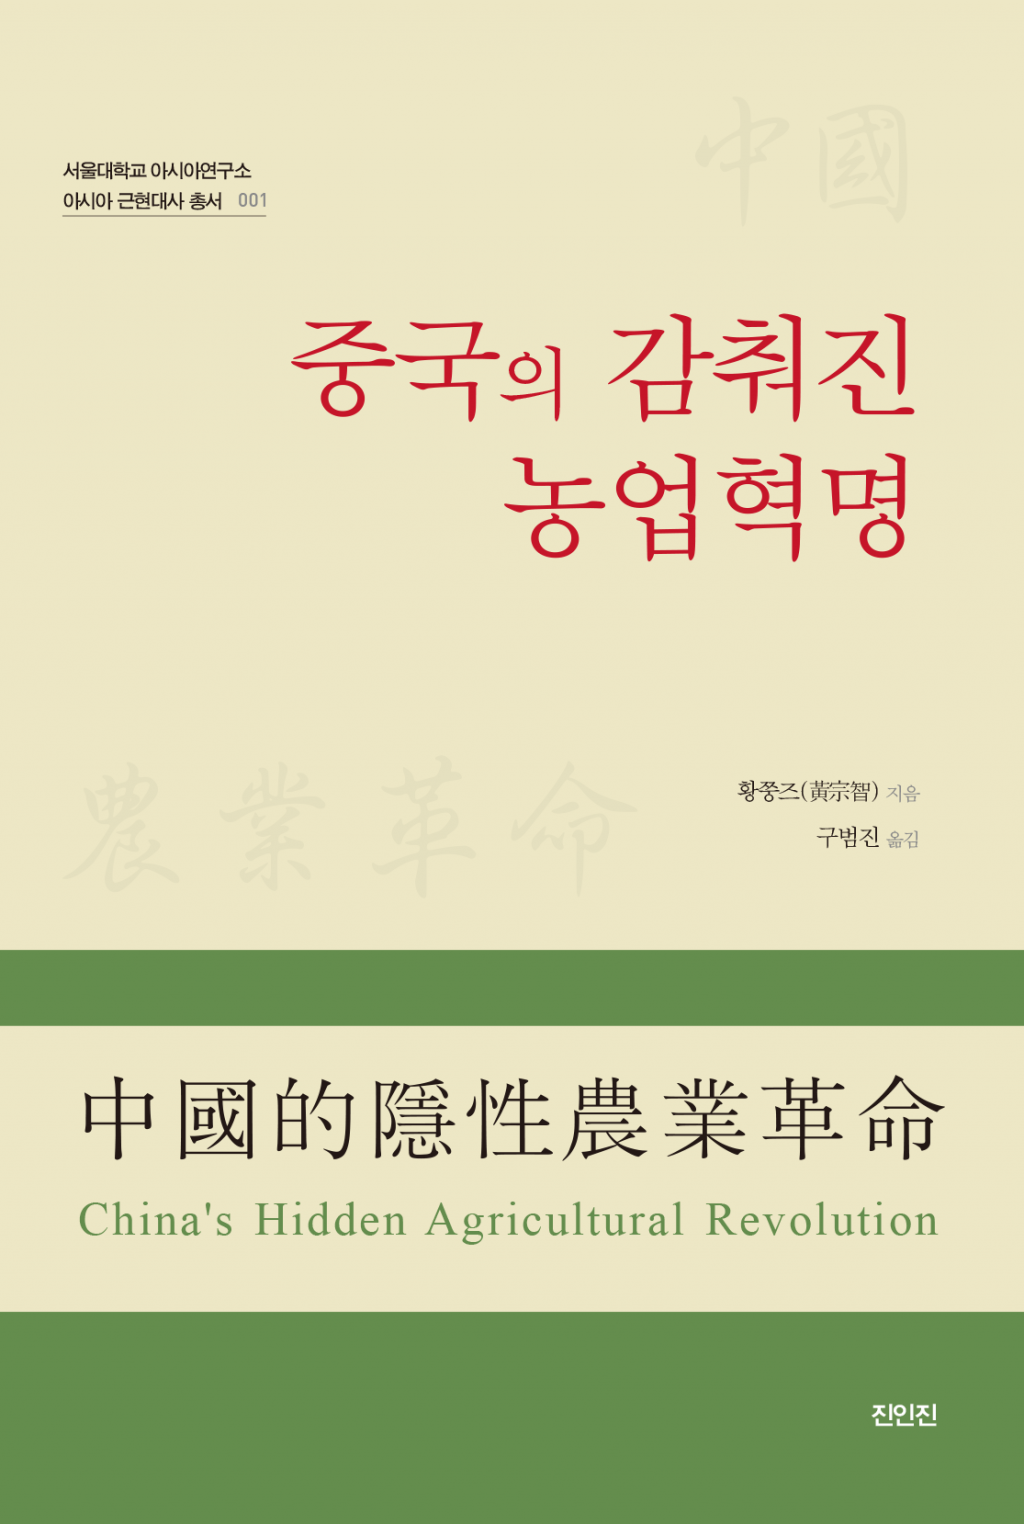 China's Hidden Agricultural Revolution